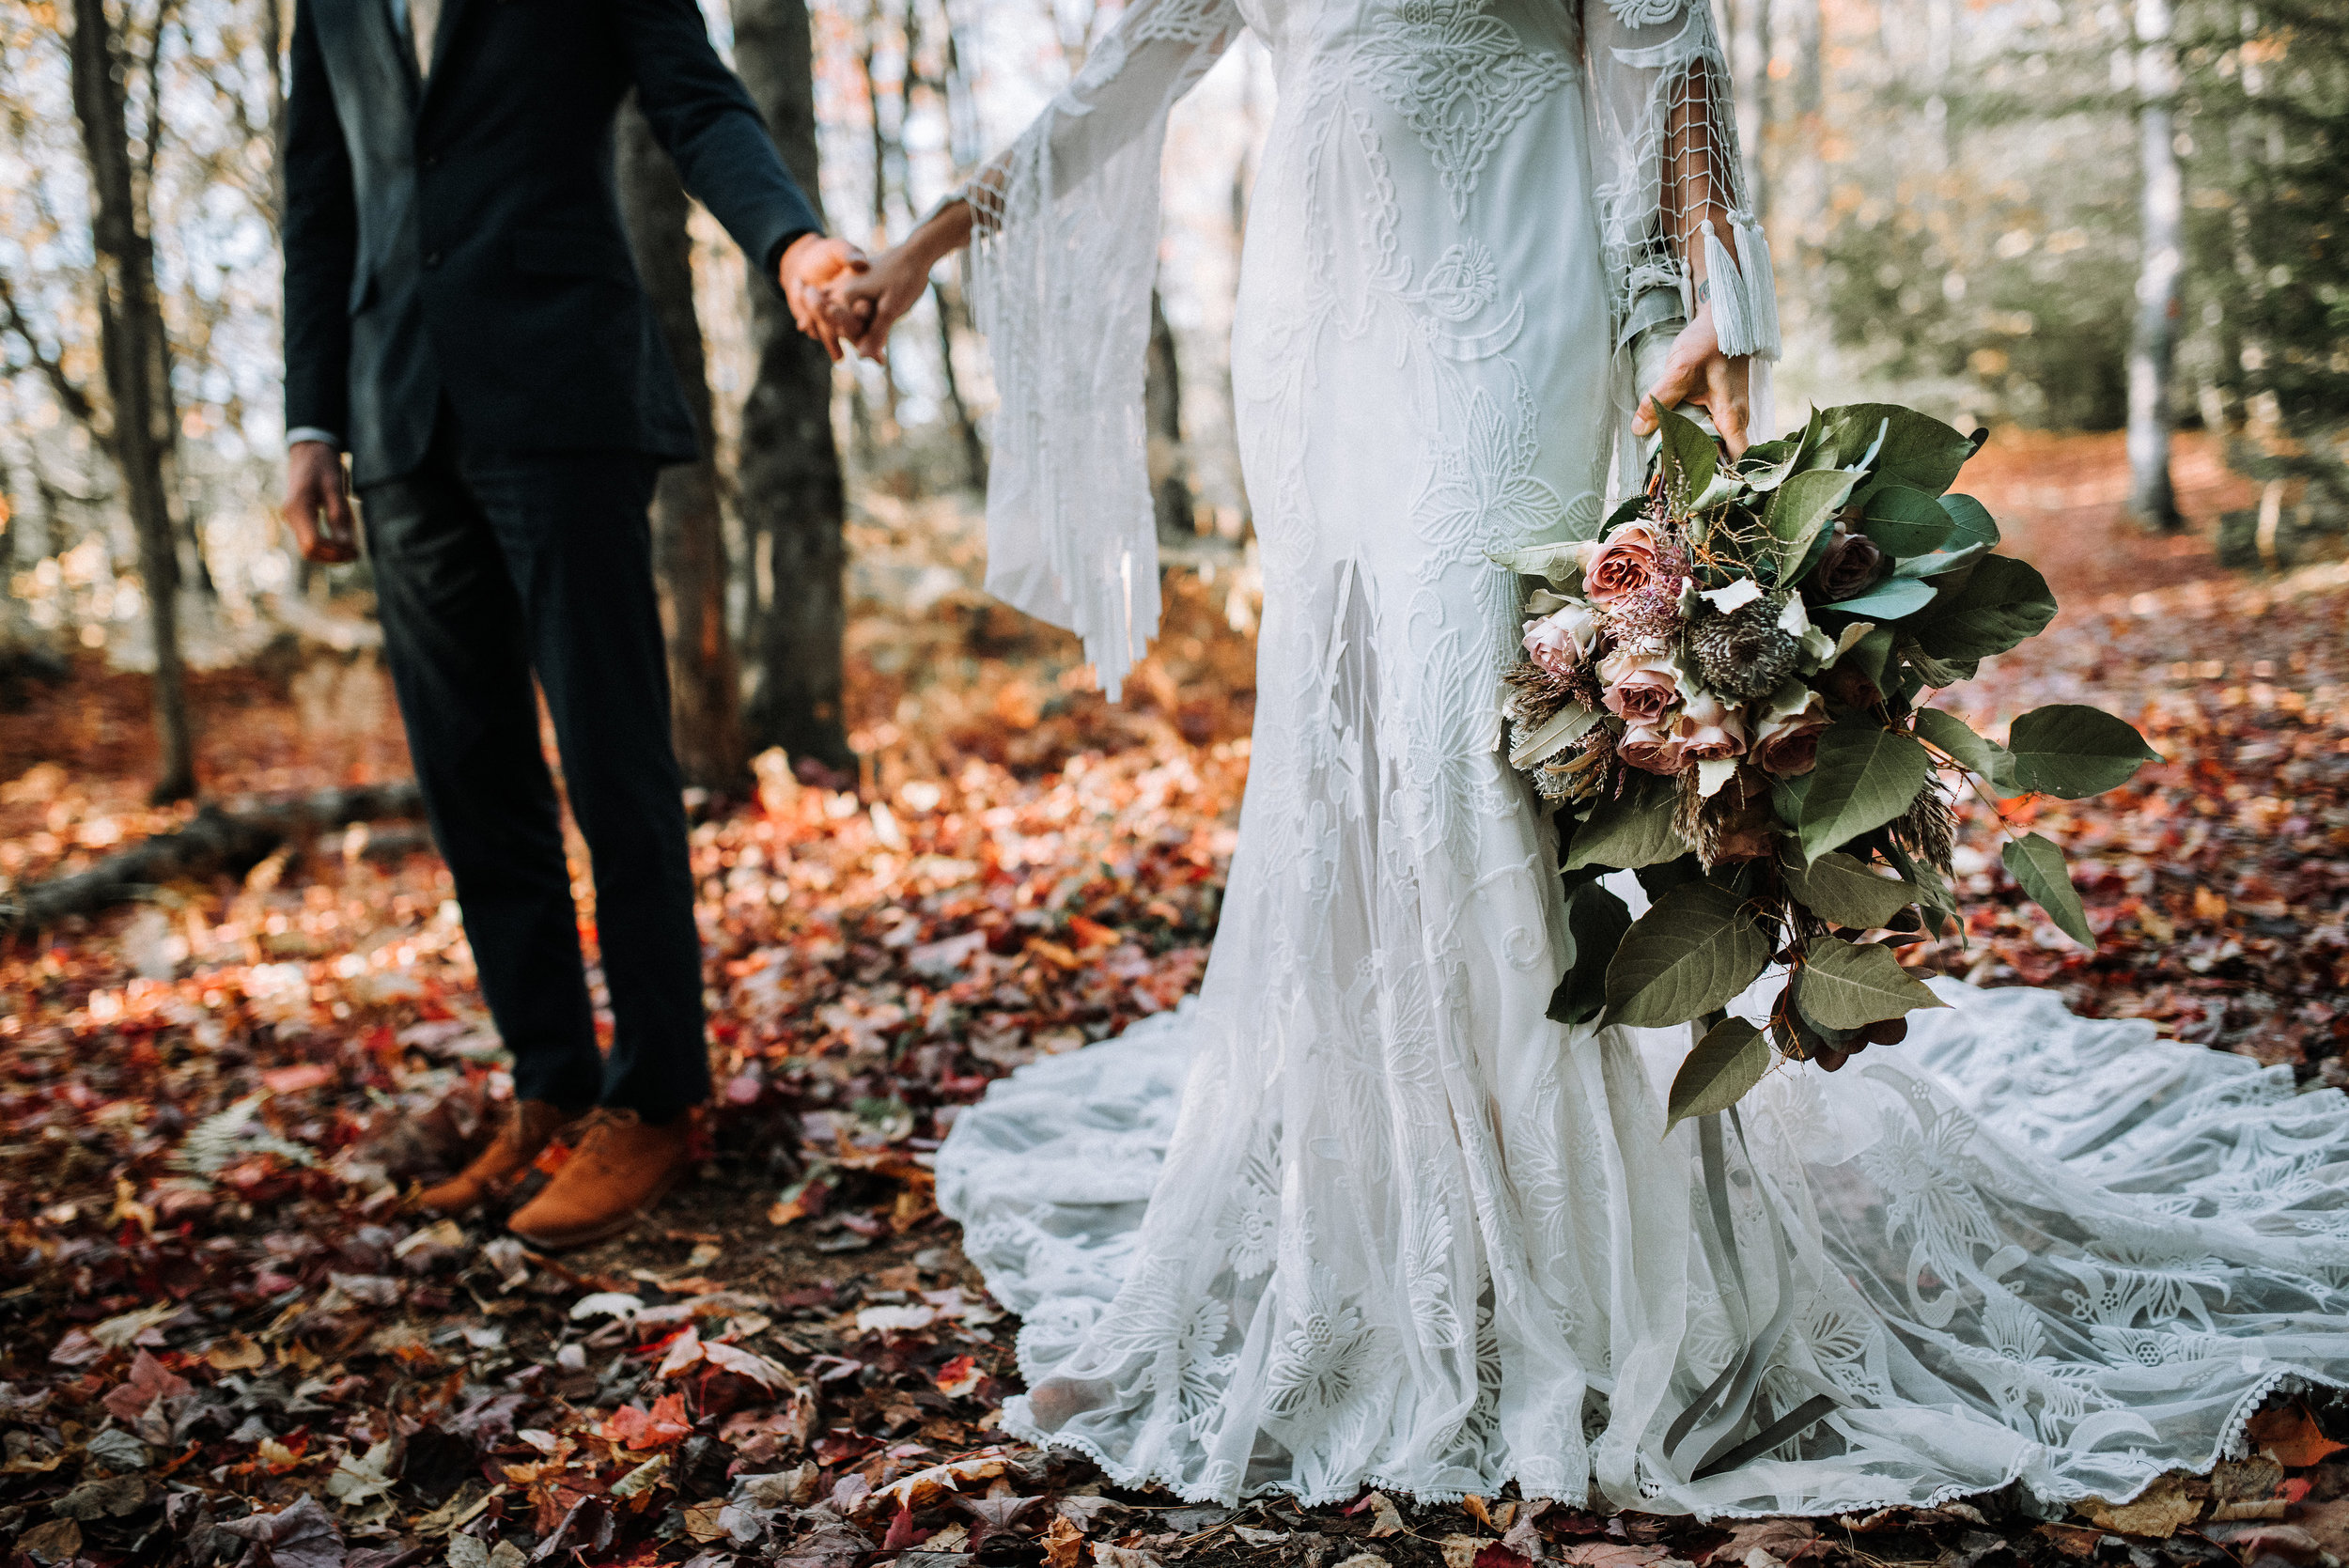 LUVLENS_WEDDING_STYLEDSHOOT_FALL17-125.jpg